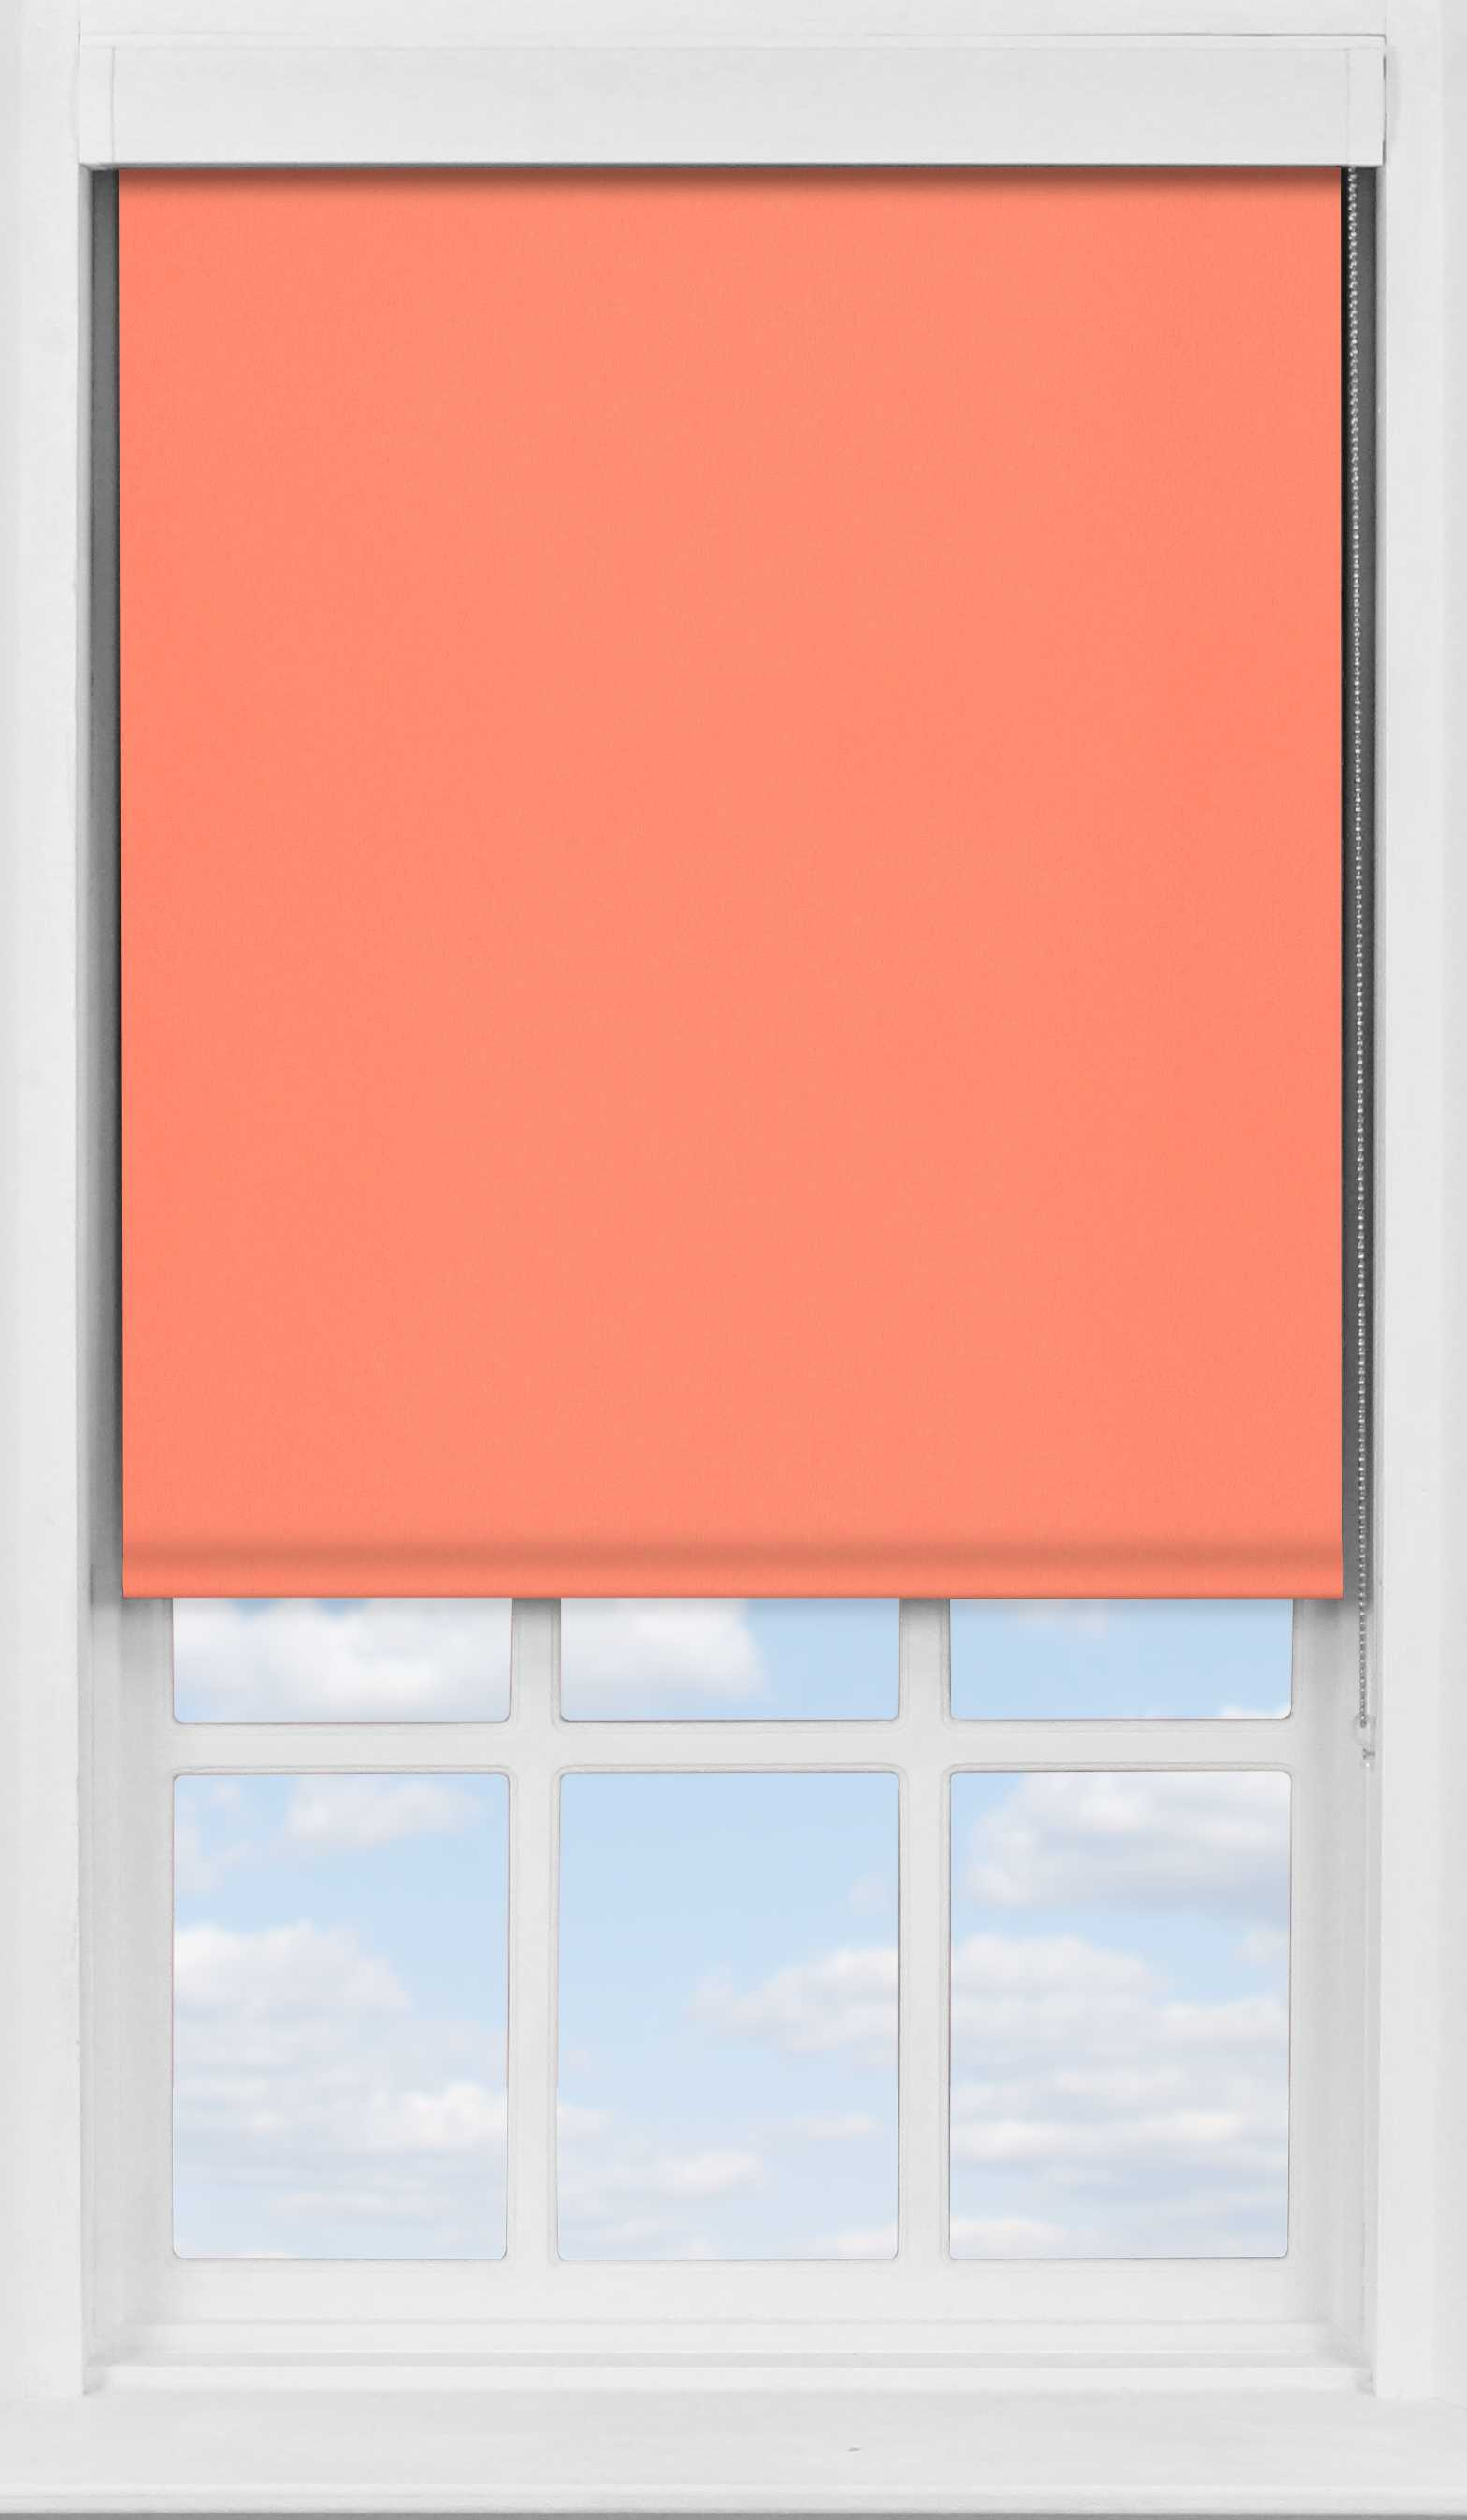 Premium Roller Blind in Coral Sunset Translucent